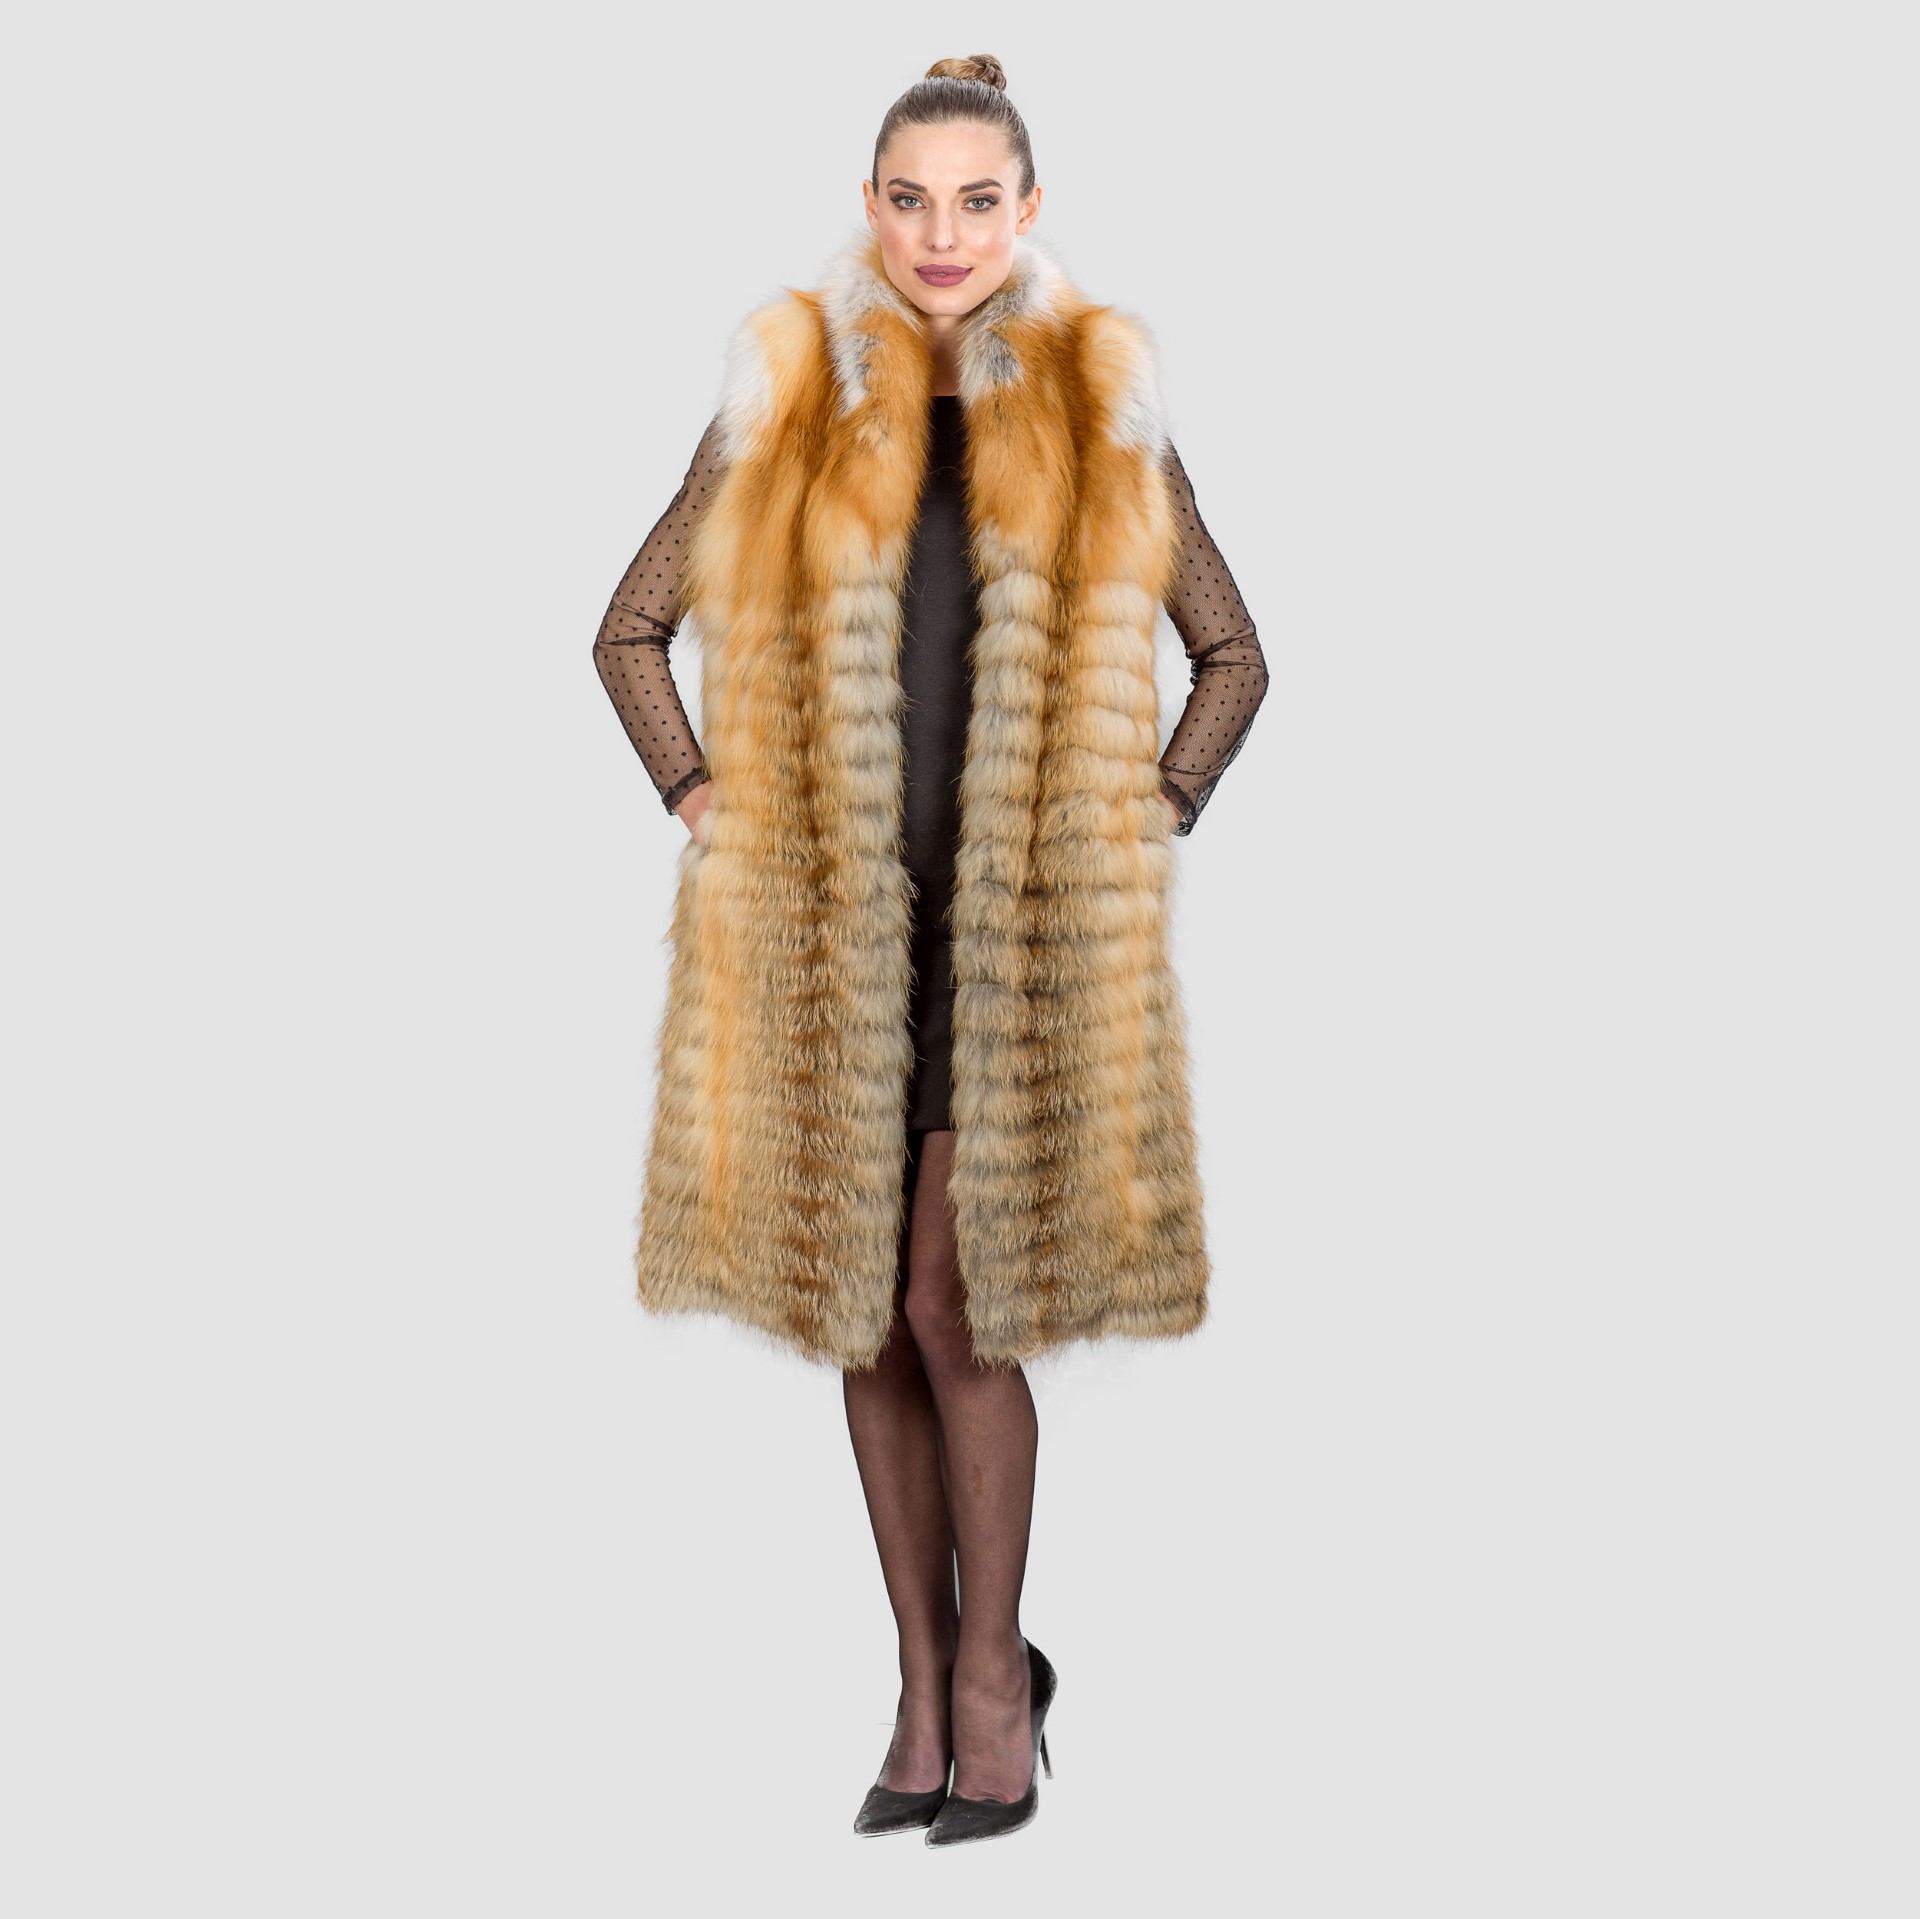 Red Fox-Brown Fur Vest. 100% Real Fur Coats and Accessories.